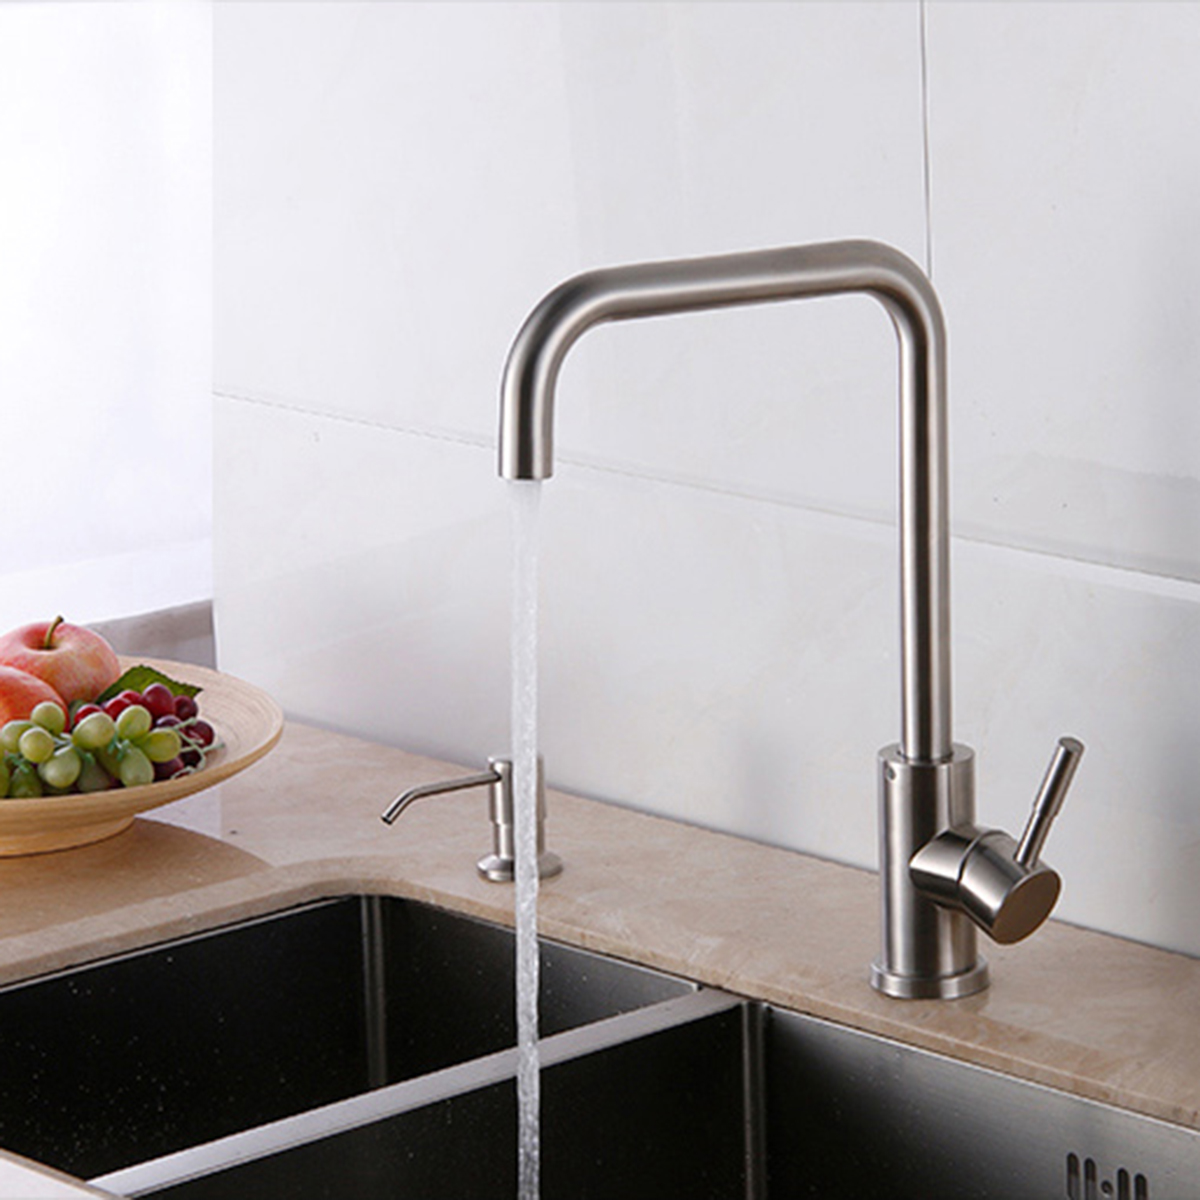 304 Stainless Steel Burnished Faucet Kitchen Hot And Cold Water Mixer  Single Handle Rotation Tap